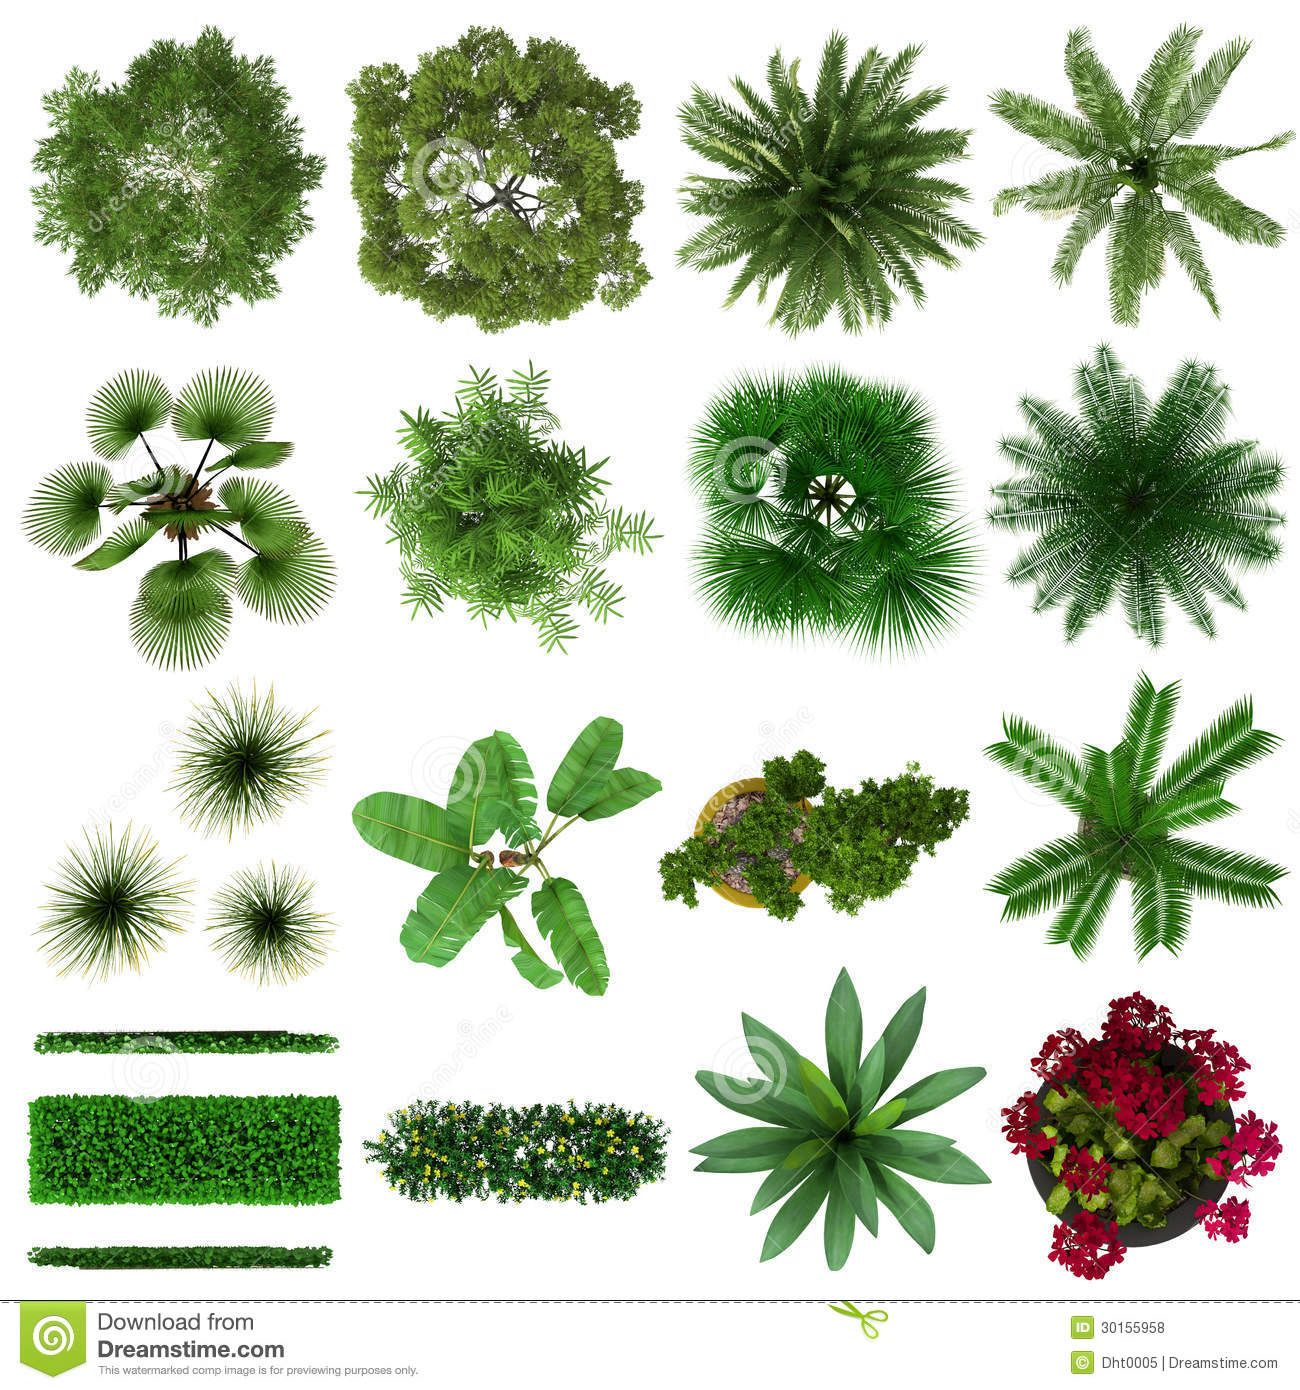 Plants plan view clipart transparent Tropical Plants Collection Top View - Download From Over 38 ... transparent